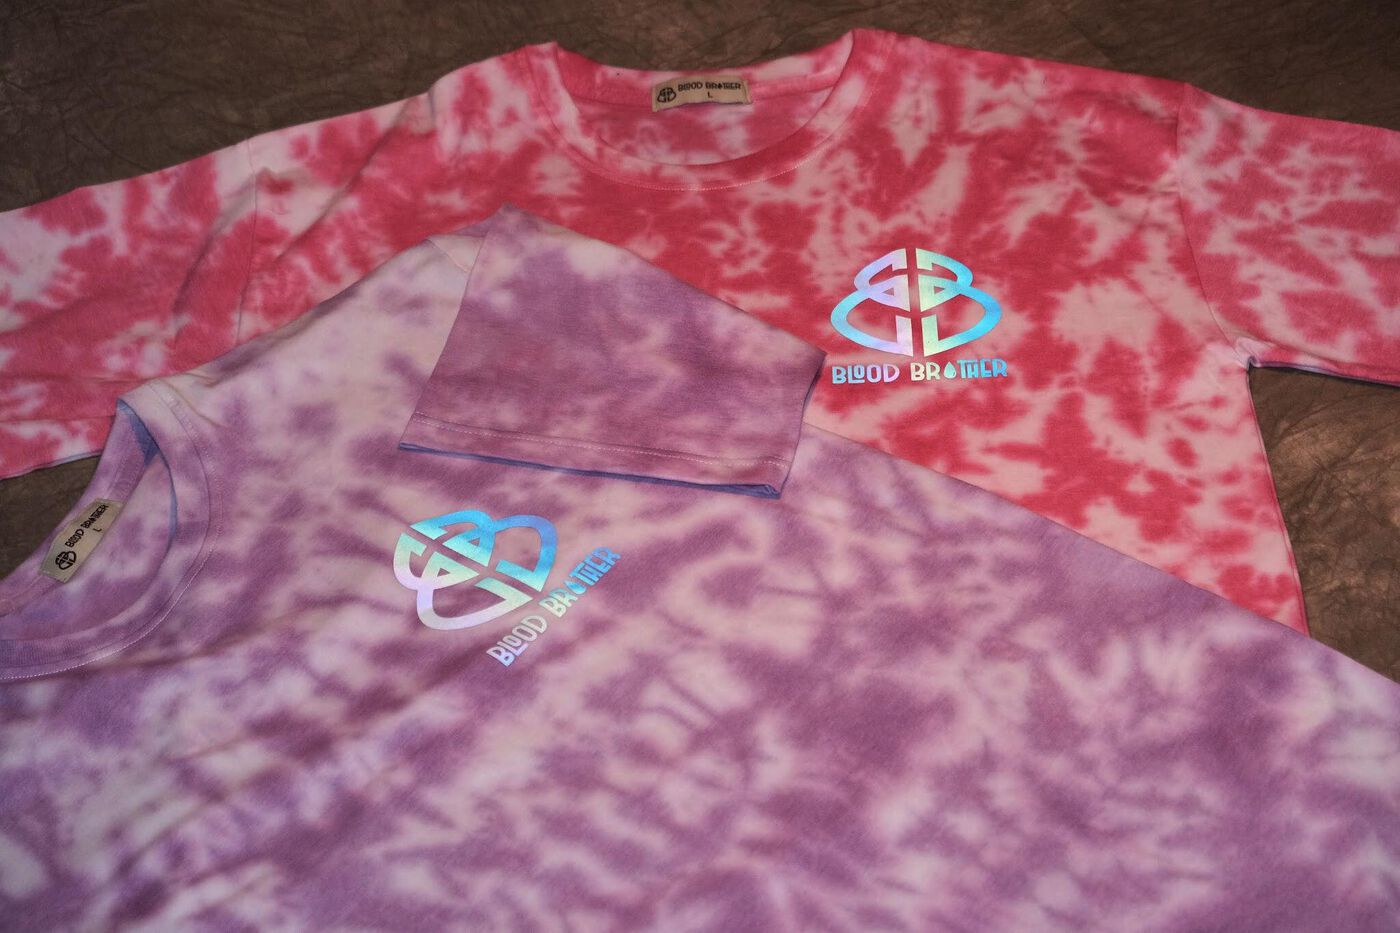 Blood Brother Tie Dye T-Shirt